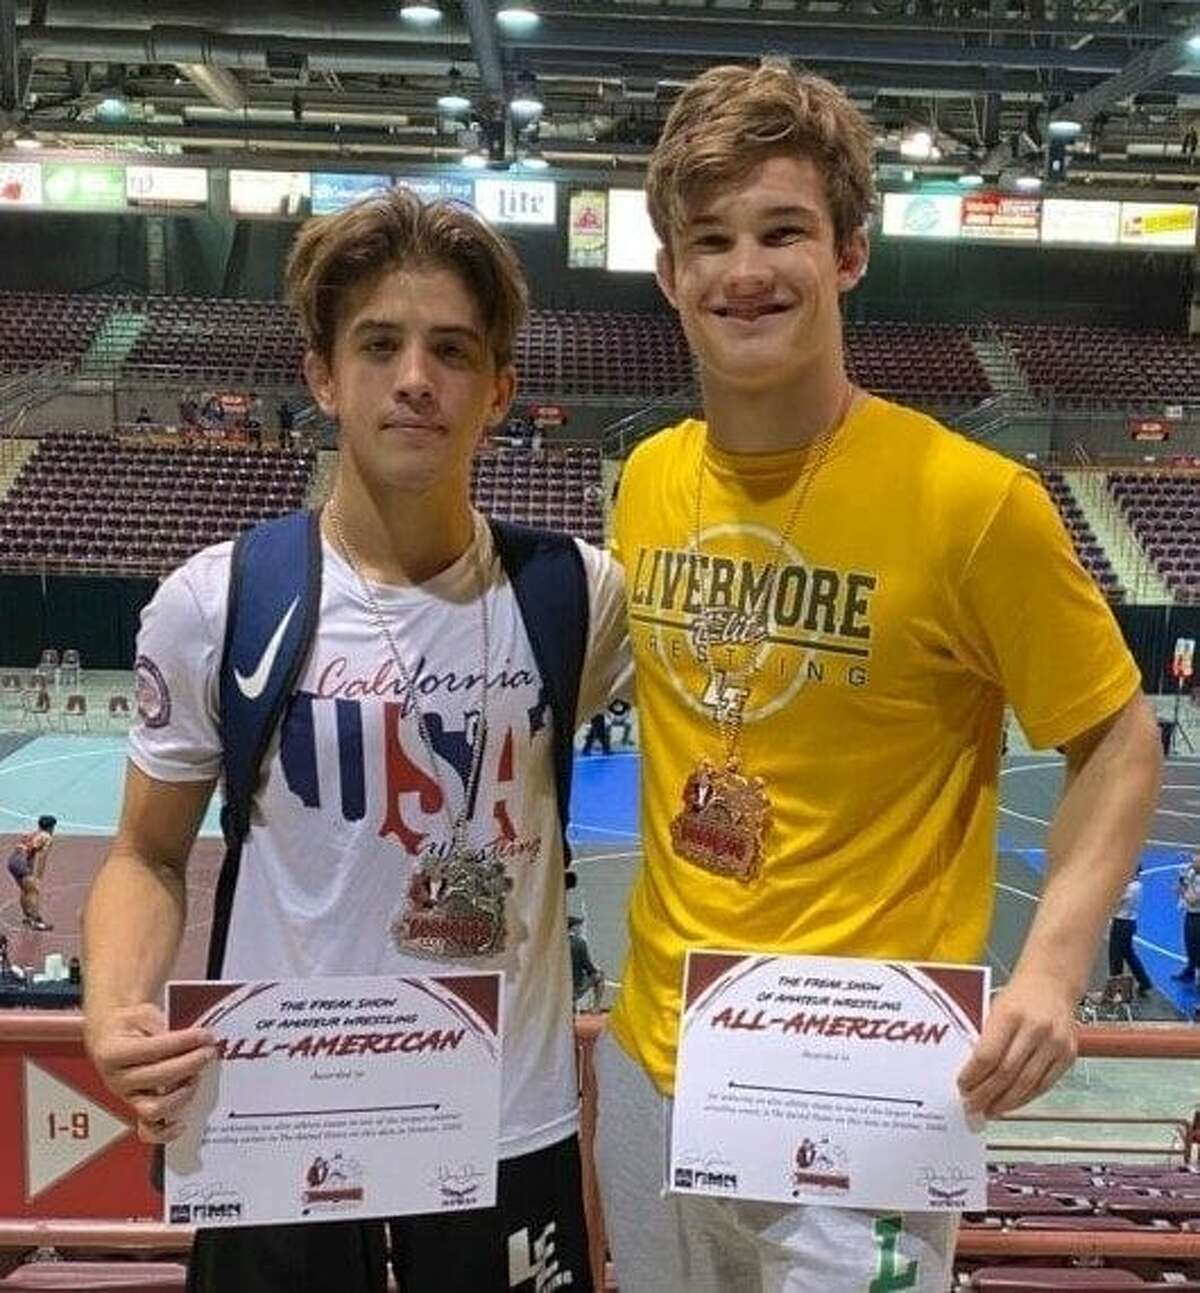 Livermore Elite Wrestling Club enters Freakshow: Bailey and Cowan place